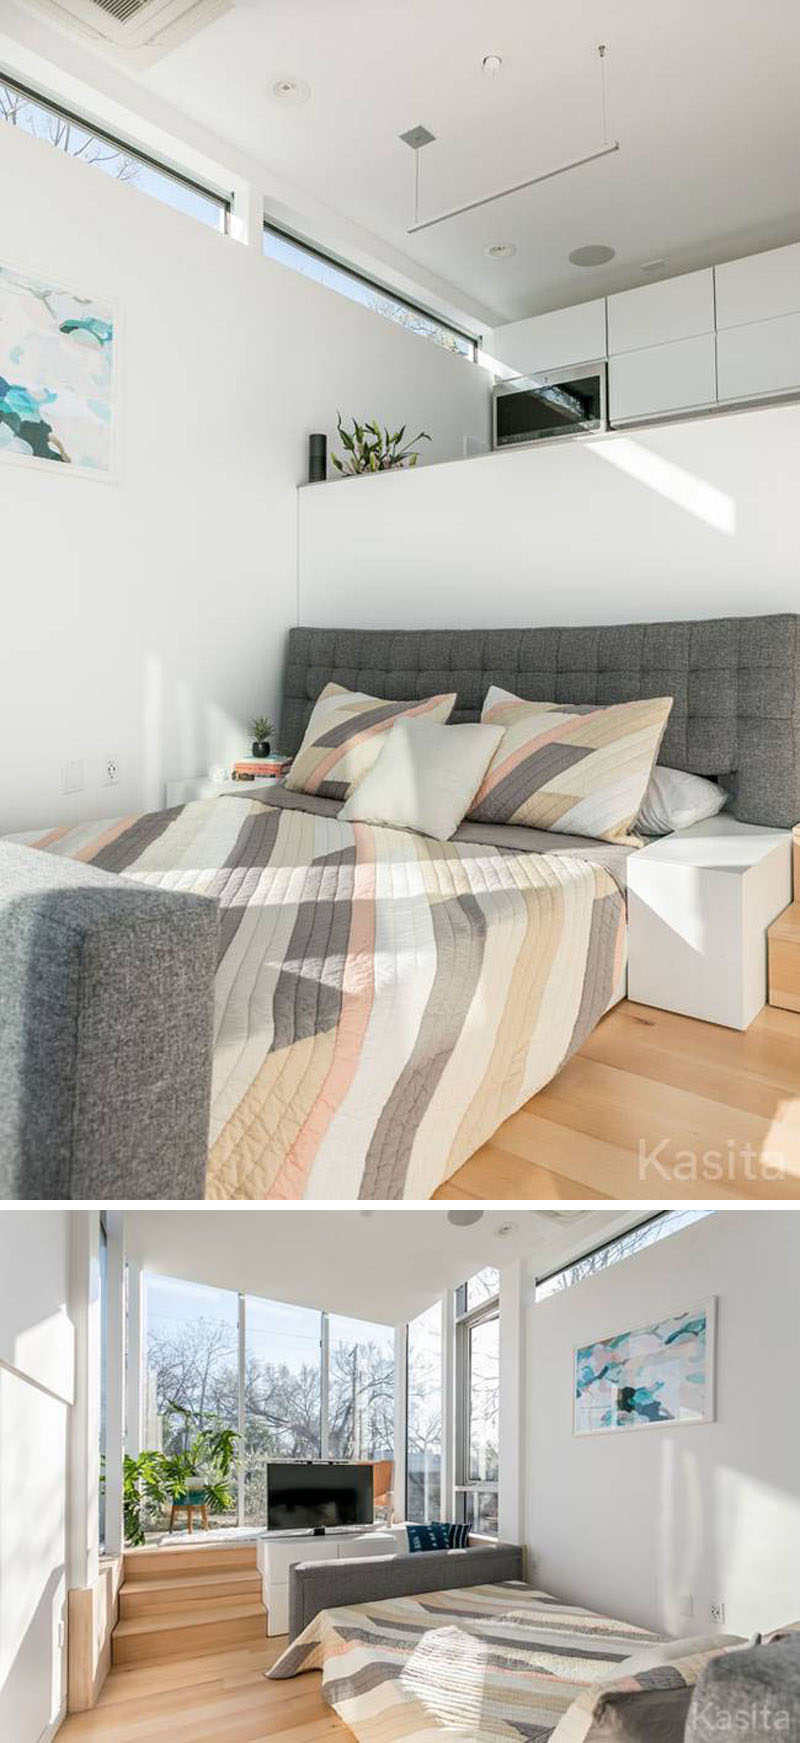 In this modern tiny house, the couch in the living room can be transformed into a queen-size bed by simply extending it out. Part of the couch frame now becomes bedside tables. #TinyHouse #TinyHome #Architecture #SmallLiving #ModernTinyHouse #SmallHouse